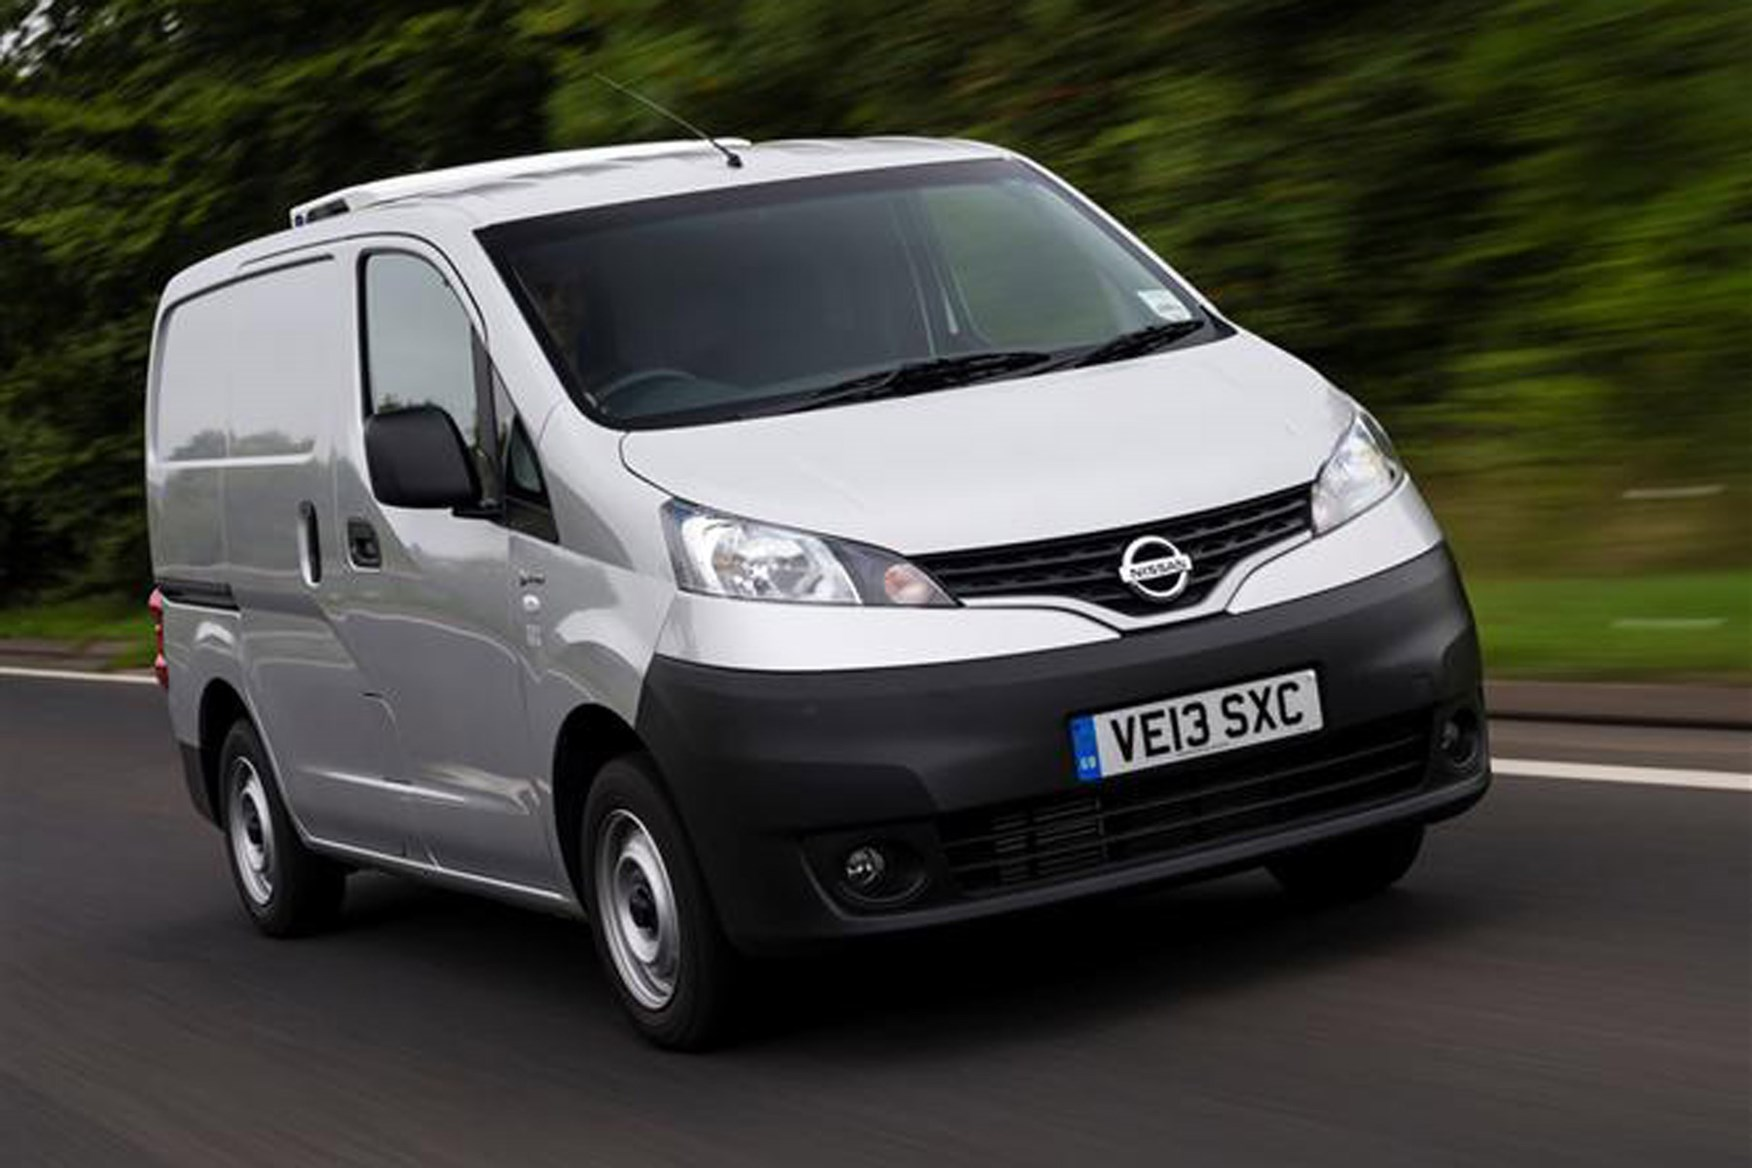 478b458f0a2c8d Nissan NV200 full review on Parkers Vans - exterior